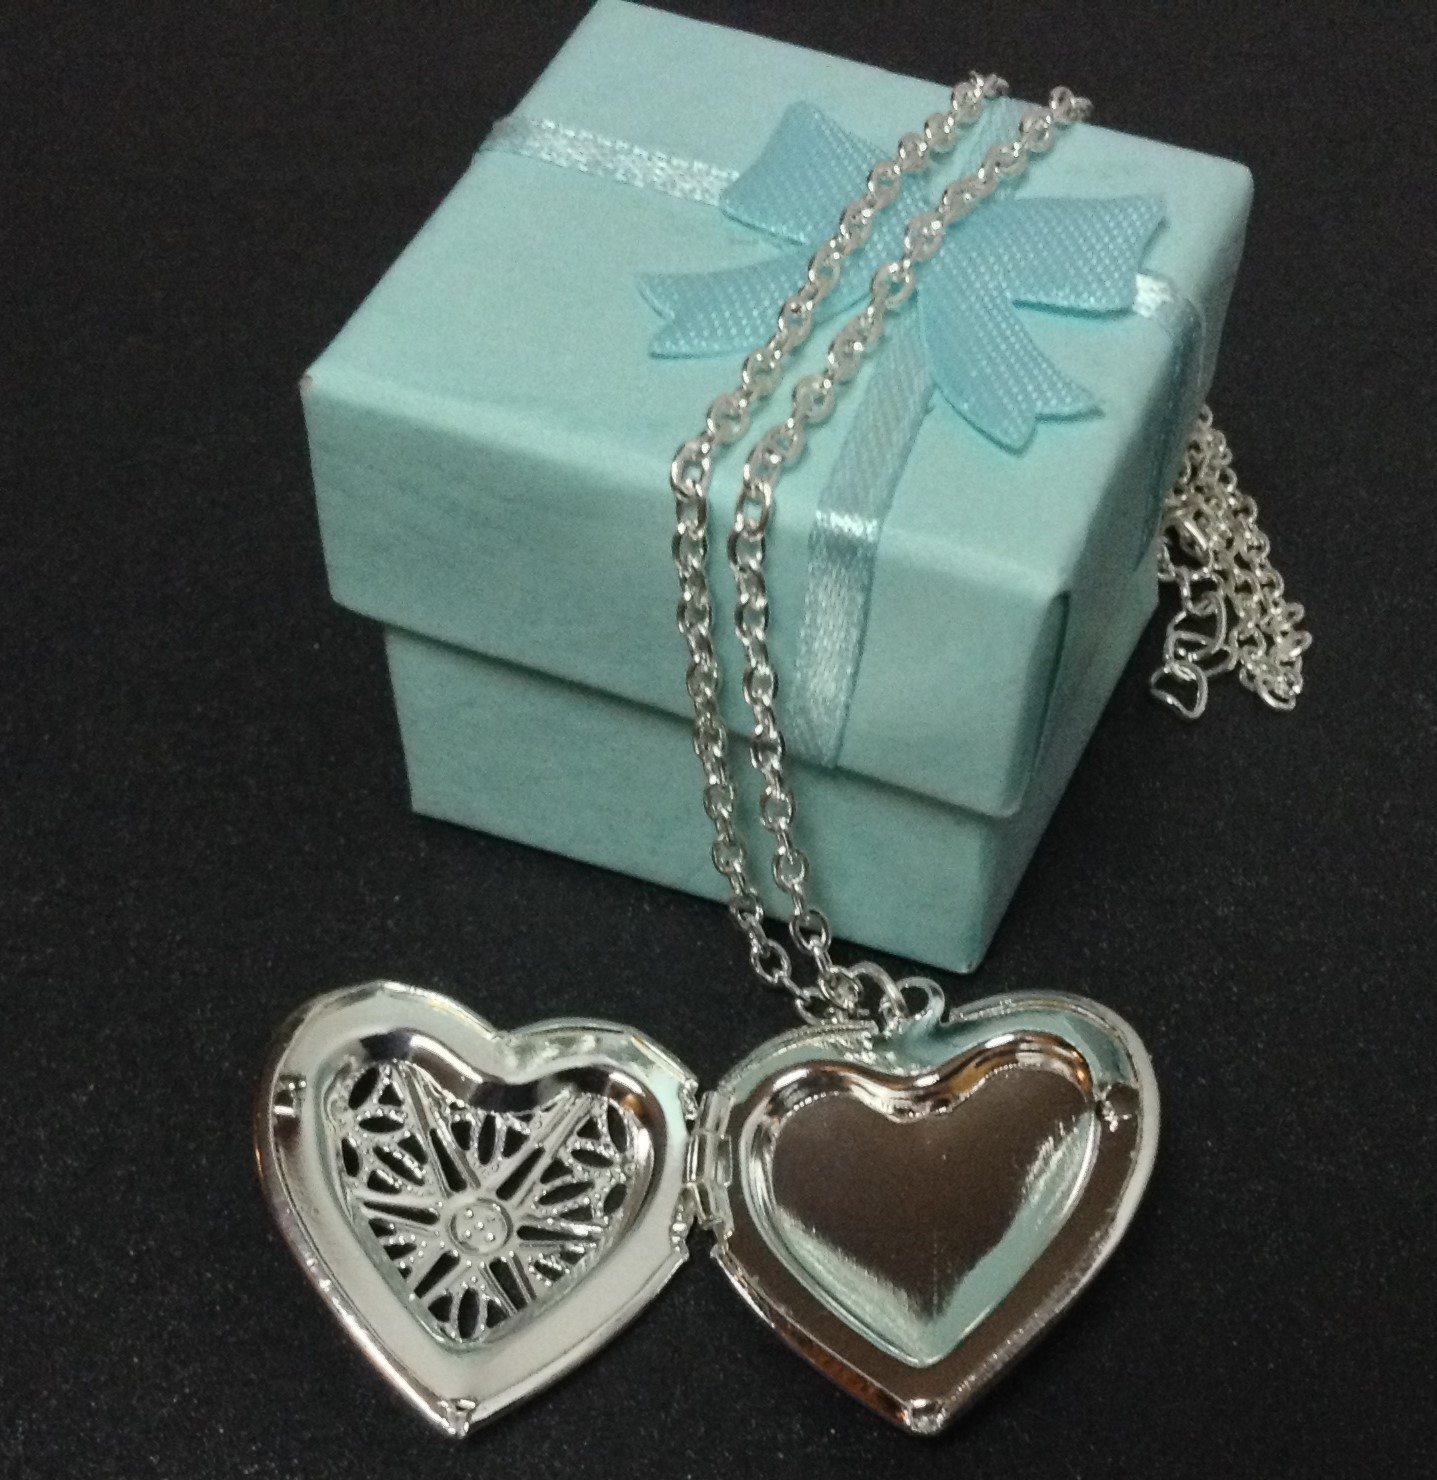 Sterling Silver Heart Locket Necklace 925 NWT Gift Box Included Free Shipping